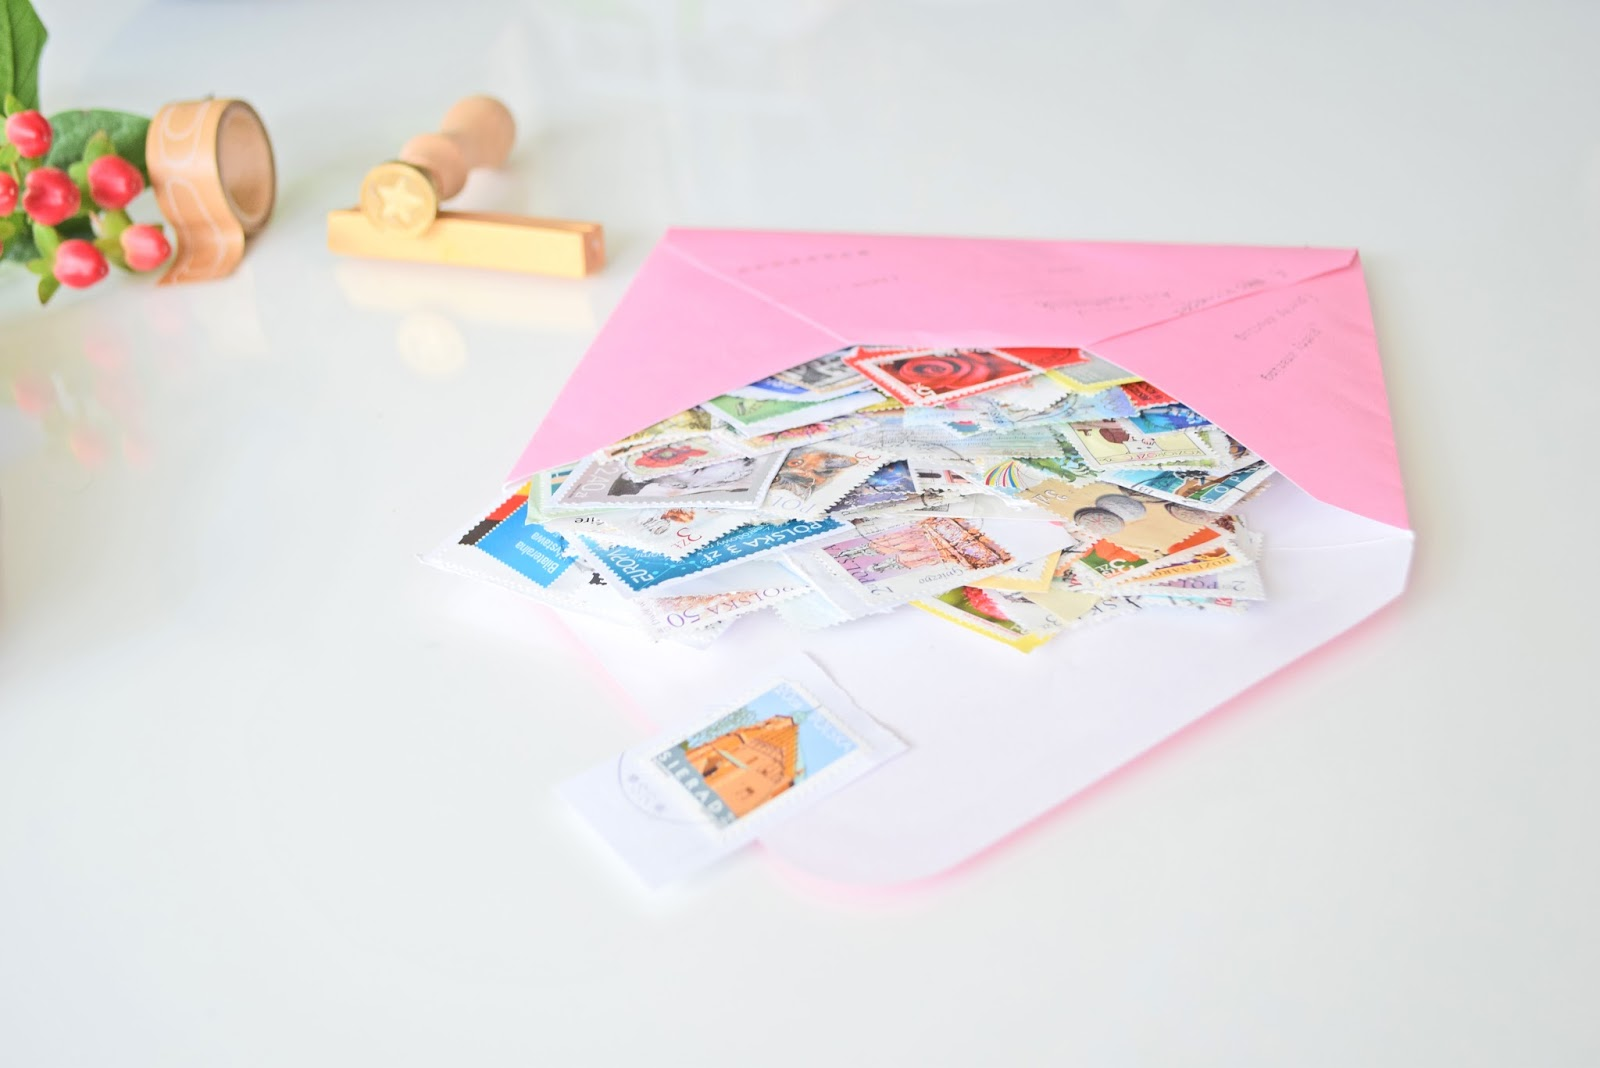 How to use stamps?